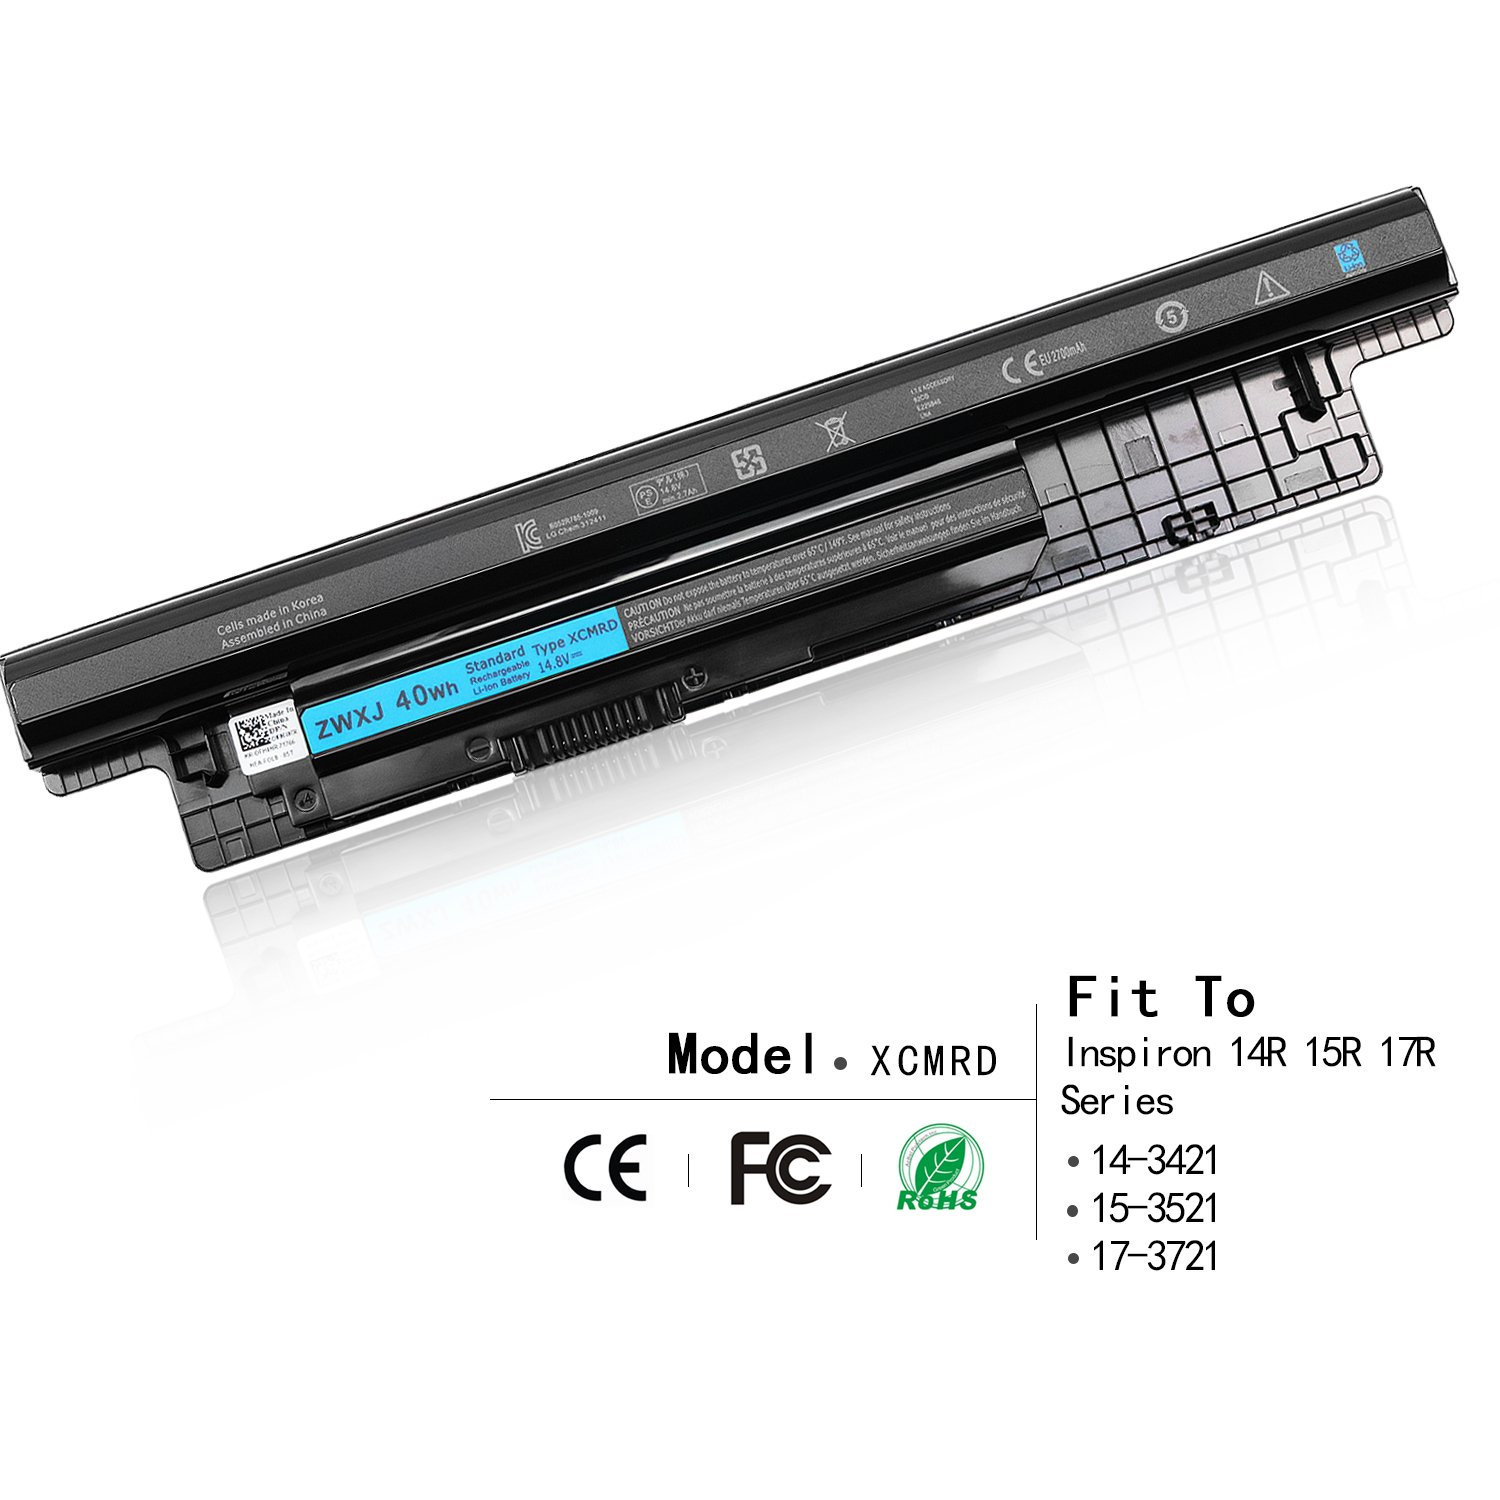 ZWXJ Laptop Battery XCMRD MR90Y (14.8V 40WH 4cell) For Dell Inspiron 14 15 17 N3421 14-3421 15-3521 17-3721 MR90Y 5421 3521 3537 5521 5537 3721 5521 5721 2421 2521 14R 15R 17R Series